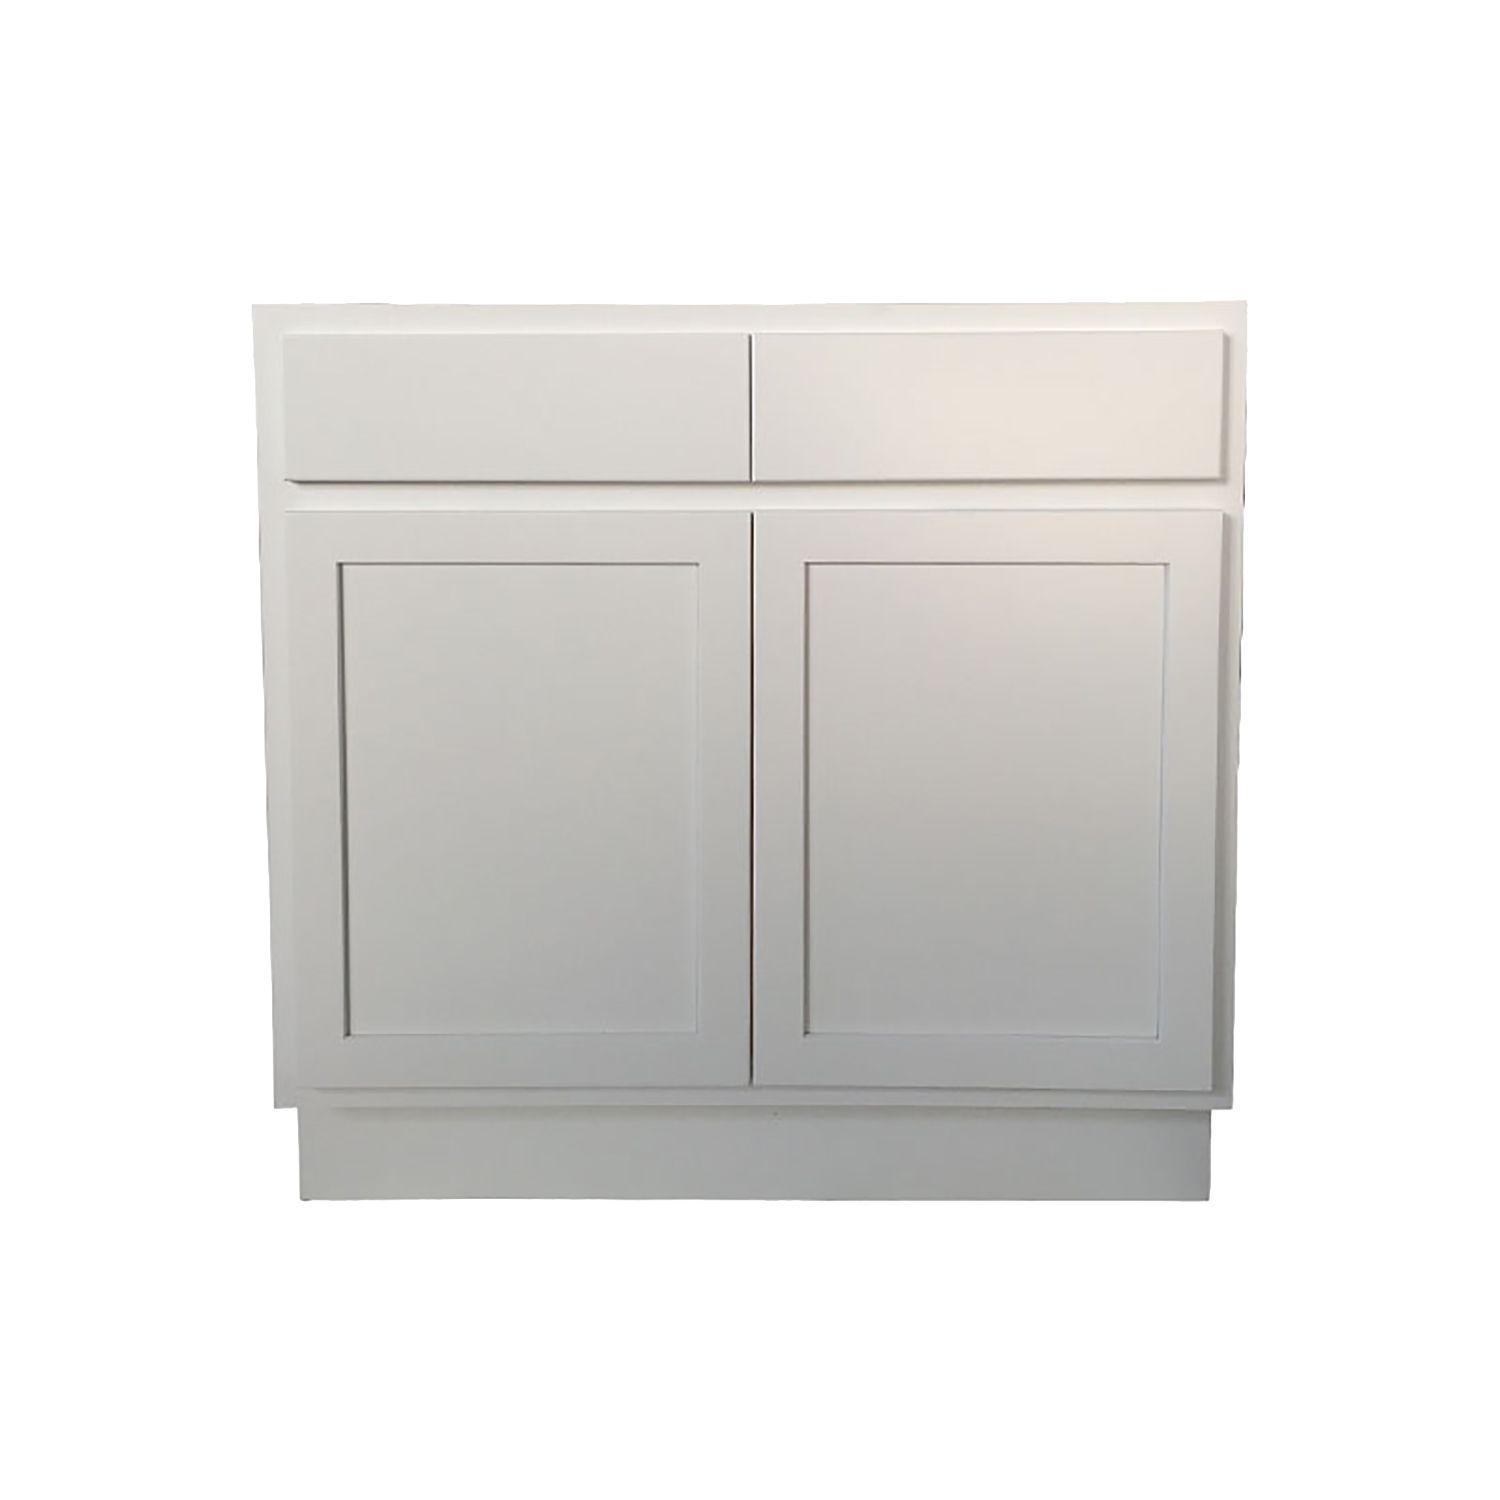 36 Inch Sink Base Cabinet White Shaker Assembled Kitchen Cabinets Kent Building Supplies